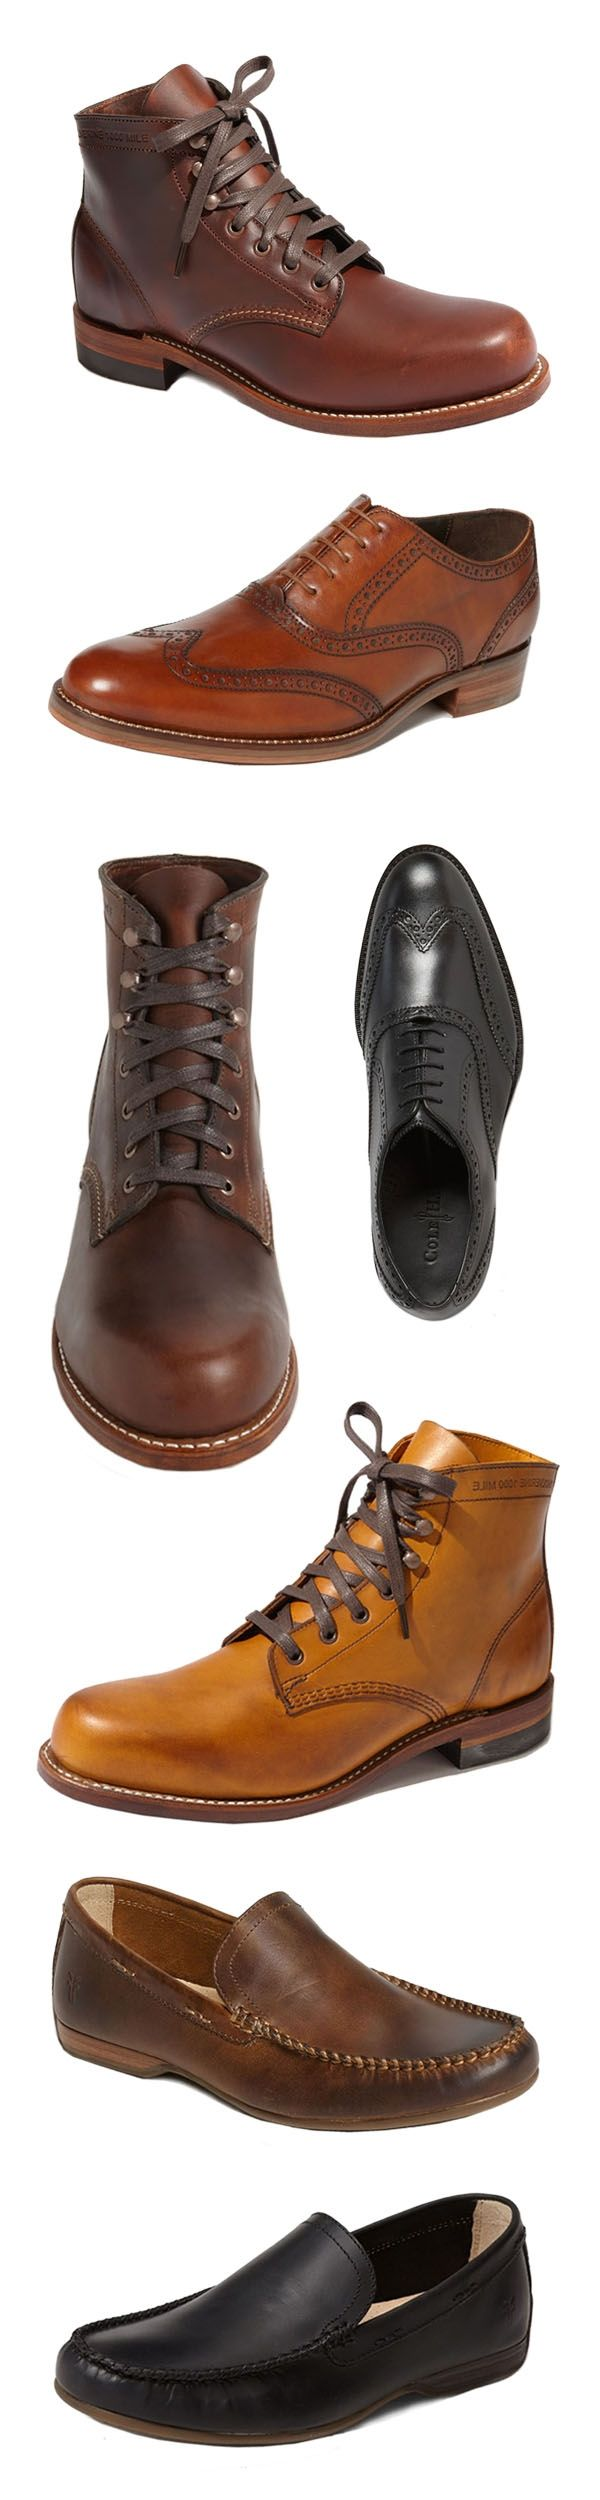 Men's YOUphoria Shoes. OPAS Package Forwarding lets you use a US address to buy from any US online store, then you can forward your order anywhere in the world. Visit opas.com